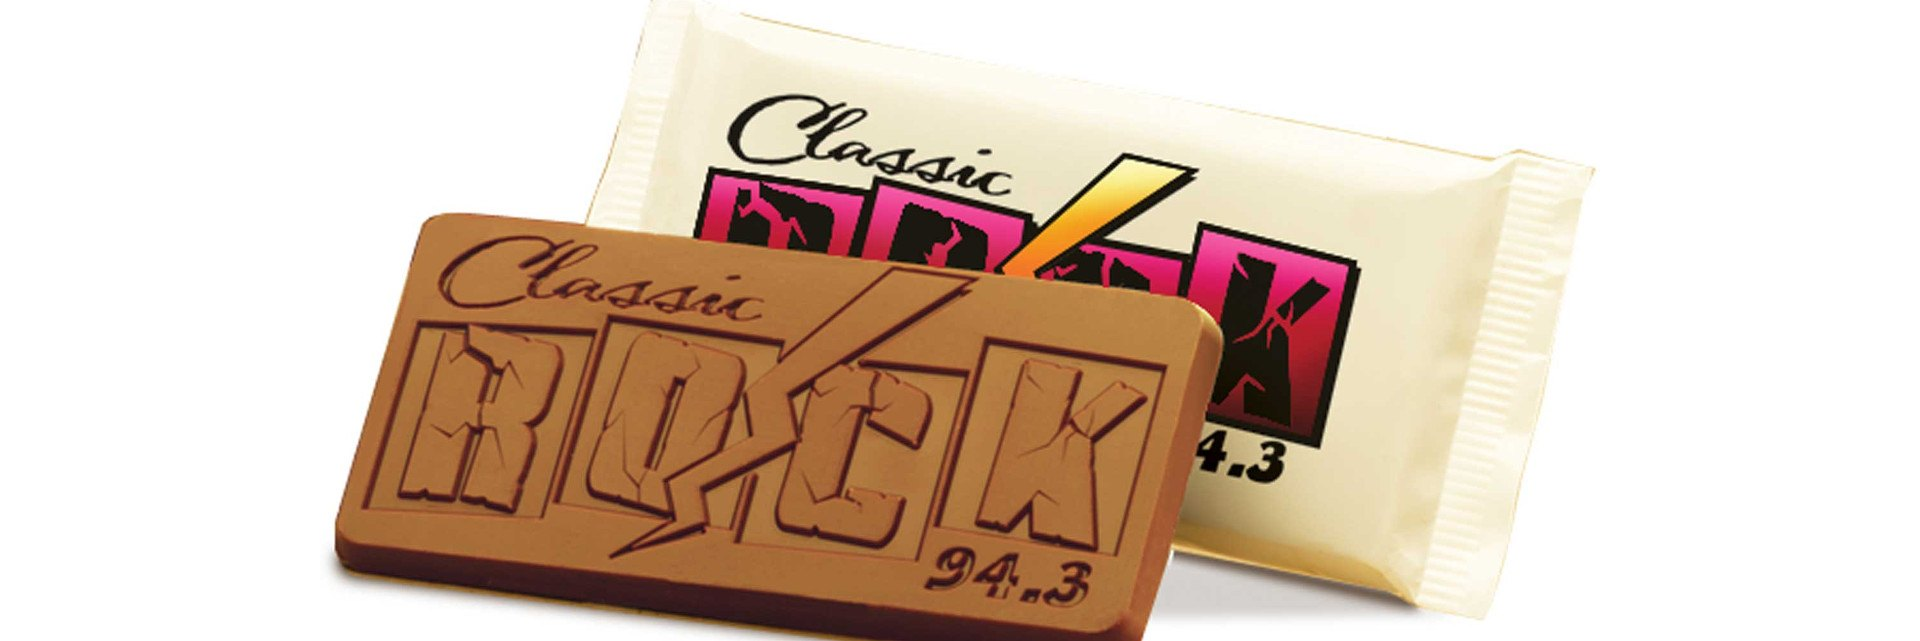 fundraising chocolate bar